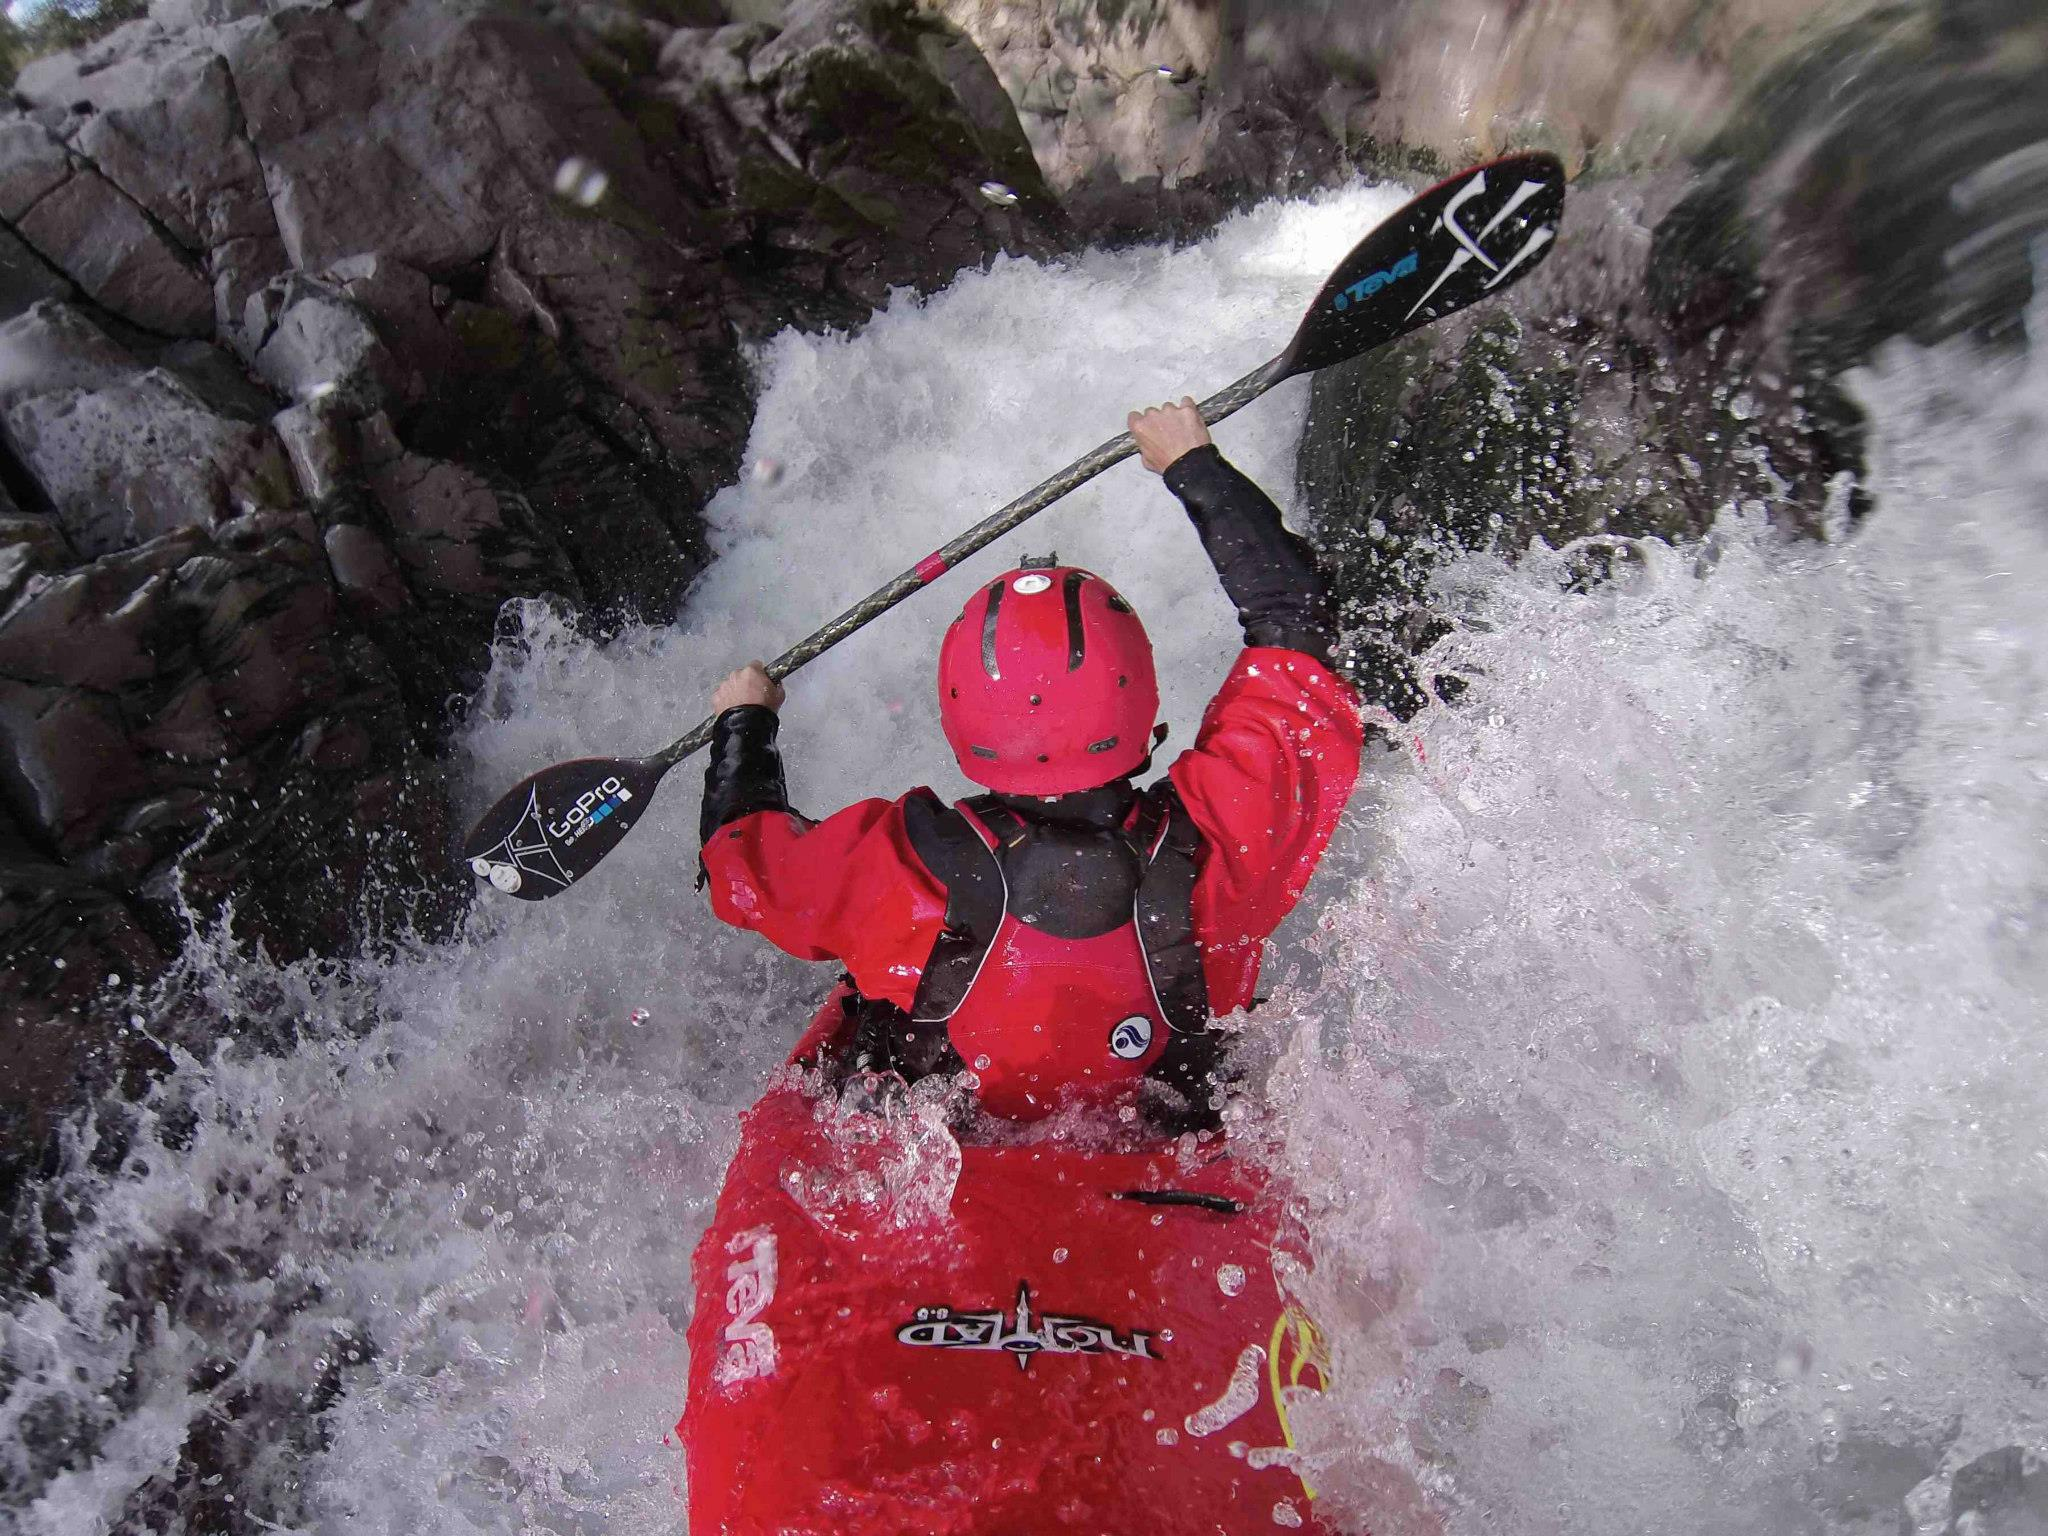 Kayak and Canoe Rush Sturges gets himself and his HERO3 in some tight spaces!